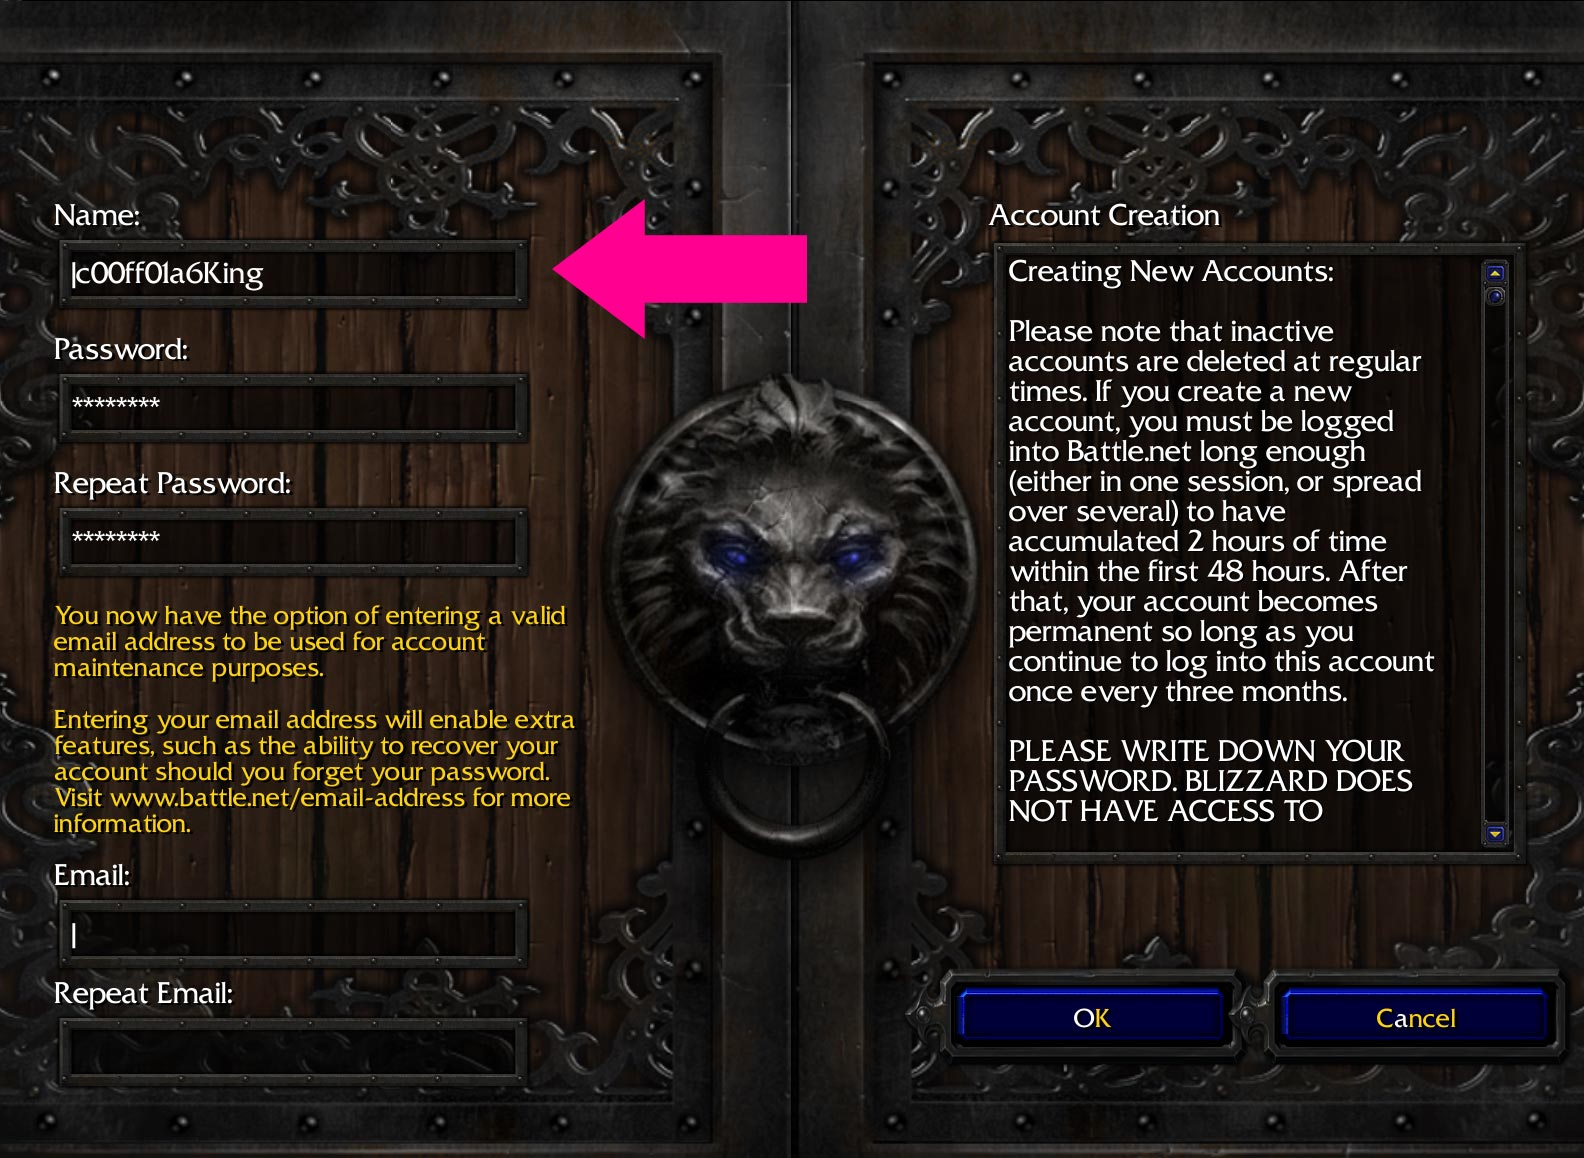 Create a new Warcraft 3 Account with a colored name